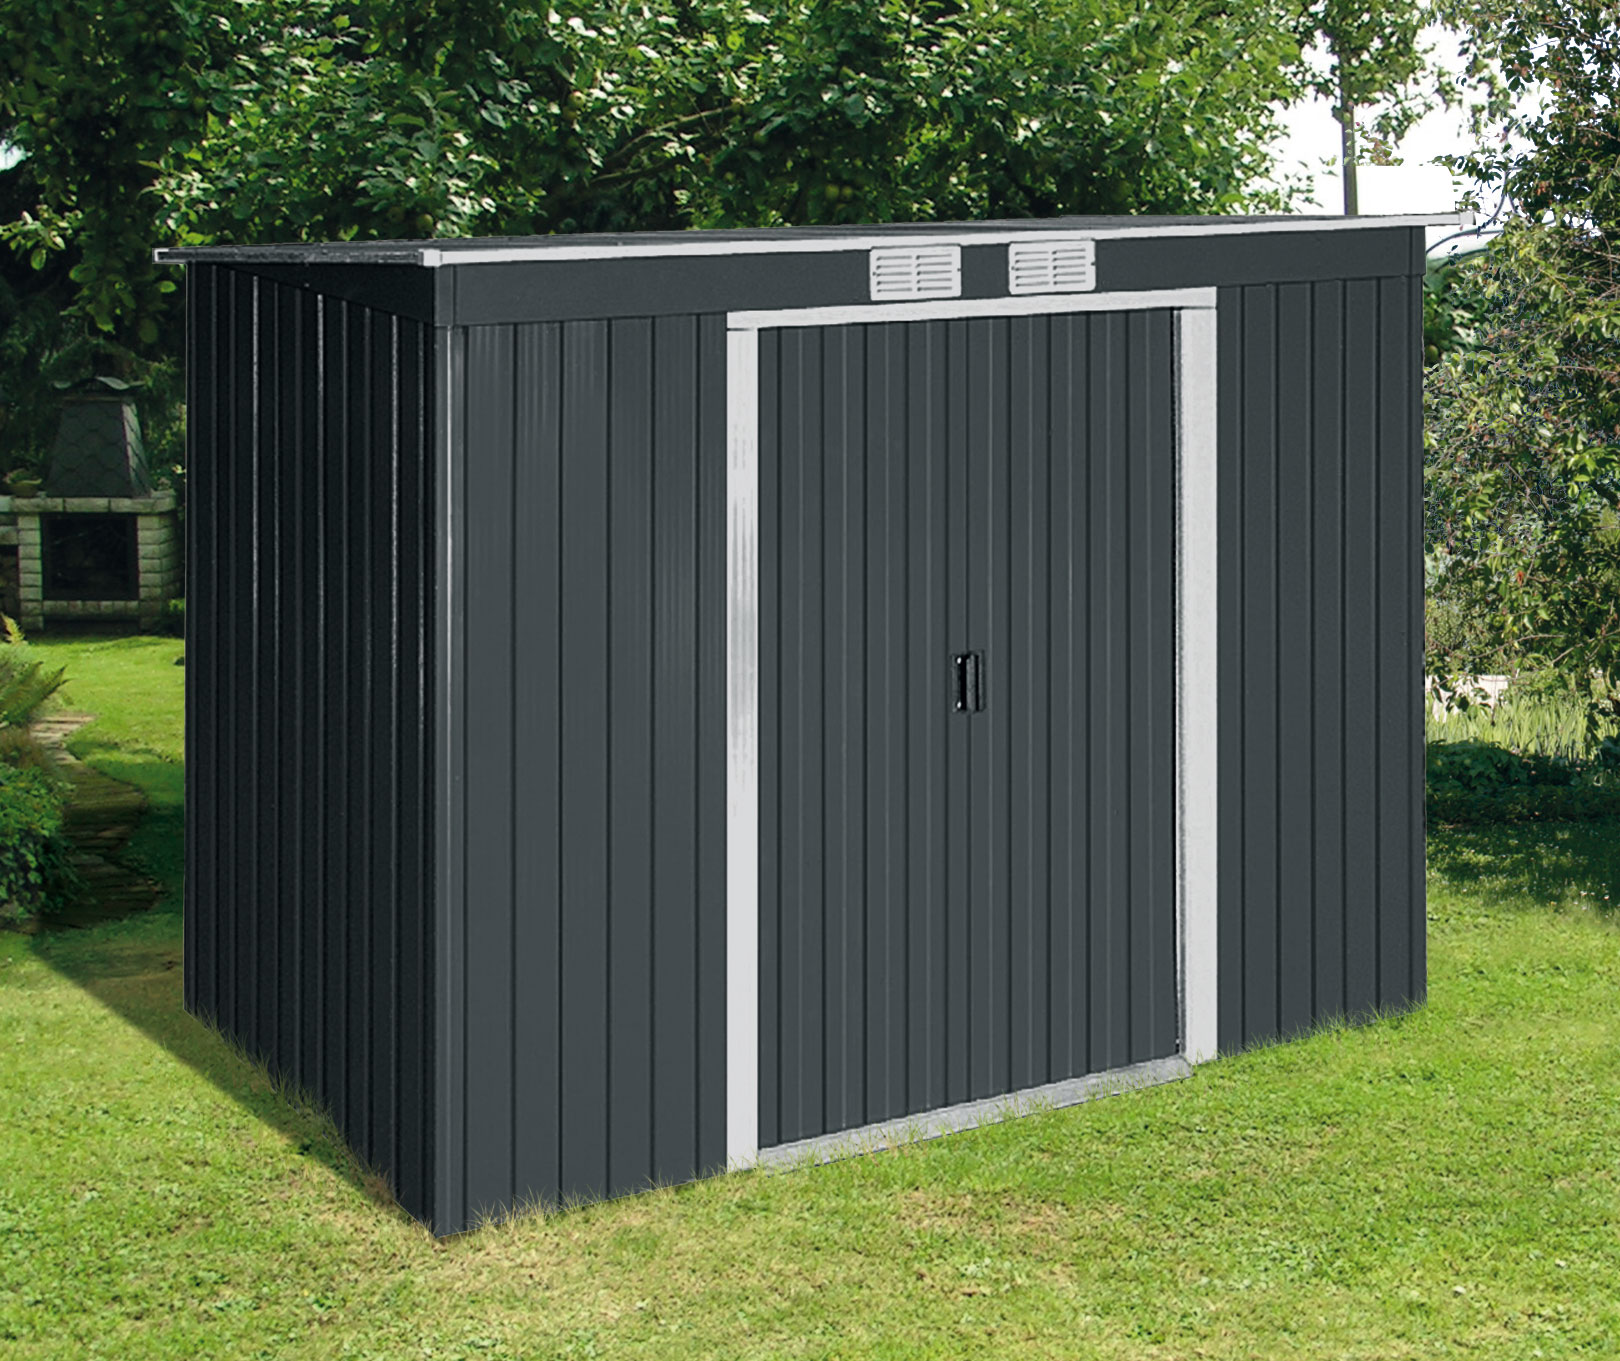 metall gartenhaus typ gss 6 4 my blog. Black Bedroom Furniture Sets. Home Design Ideas